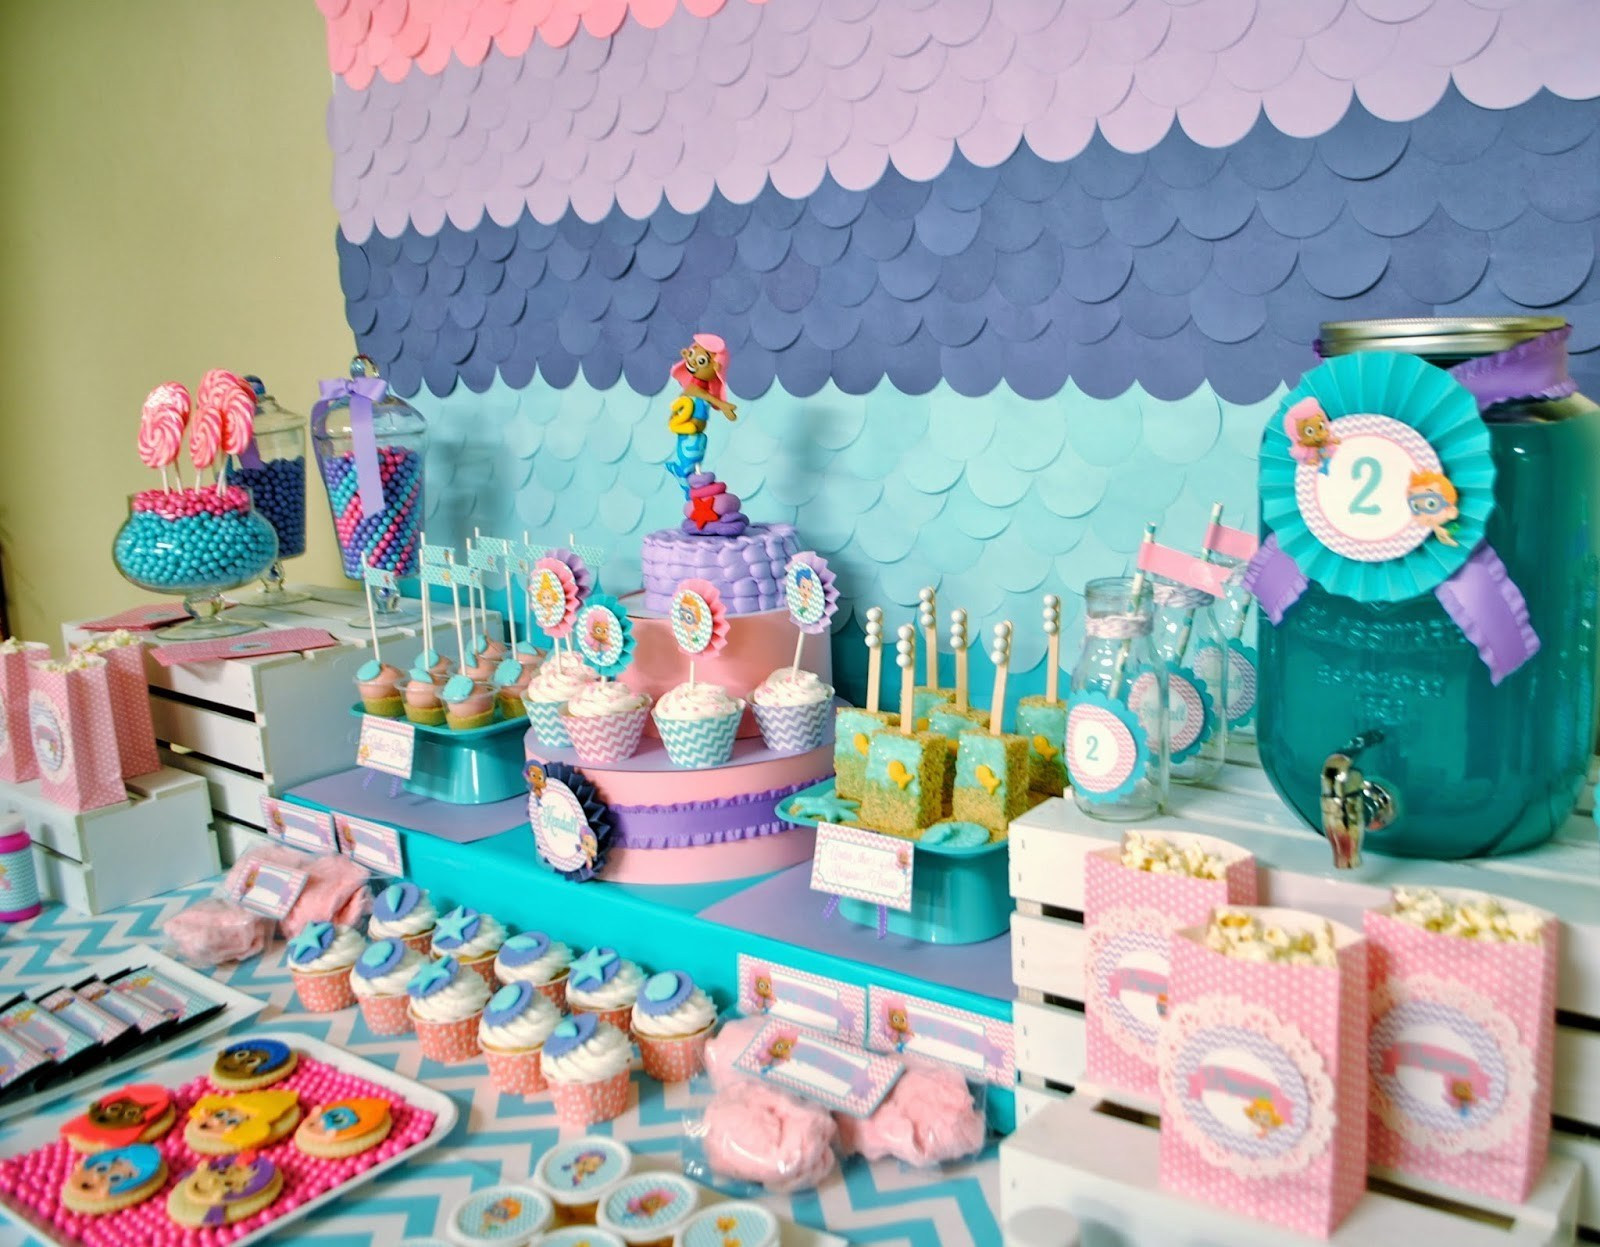 Best ideas about Unique Birthday Party Ideas . Save or Pin First birthday decoration ideas at home for girl unique Now.